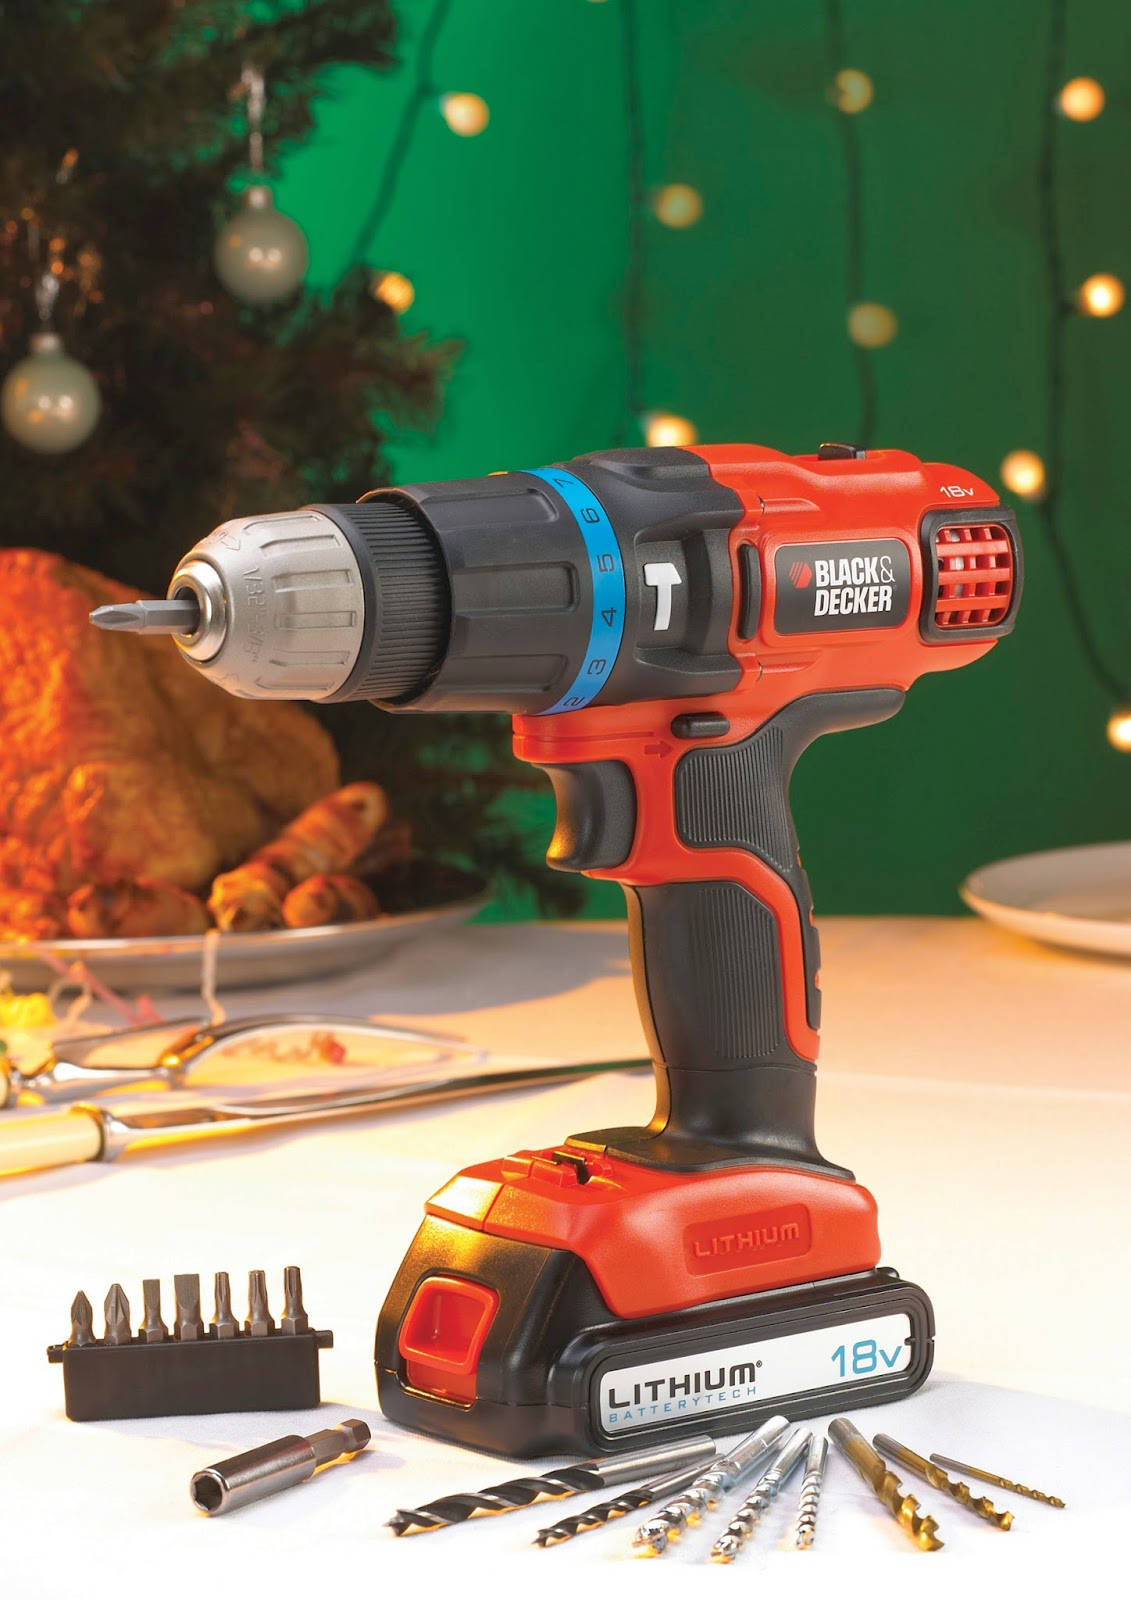 http://www.beesleyandfildes.co.uk/black-decker-18v-li-ion-combi-drill-with-free-16-piece-accessory-set-ref-xms14cordles/